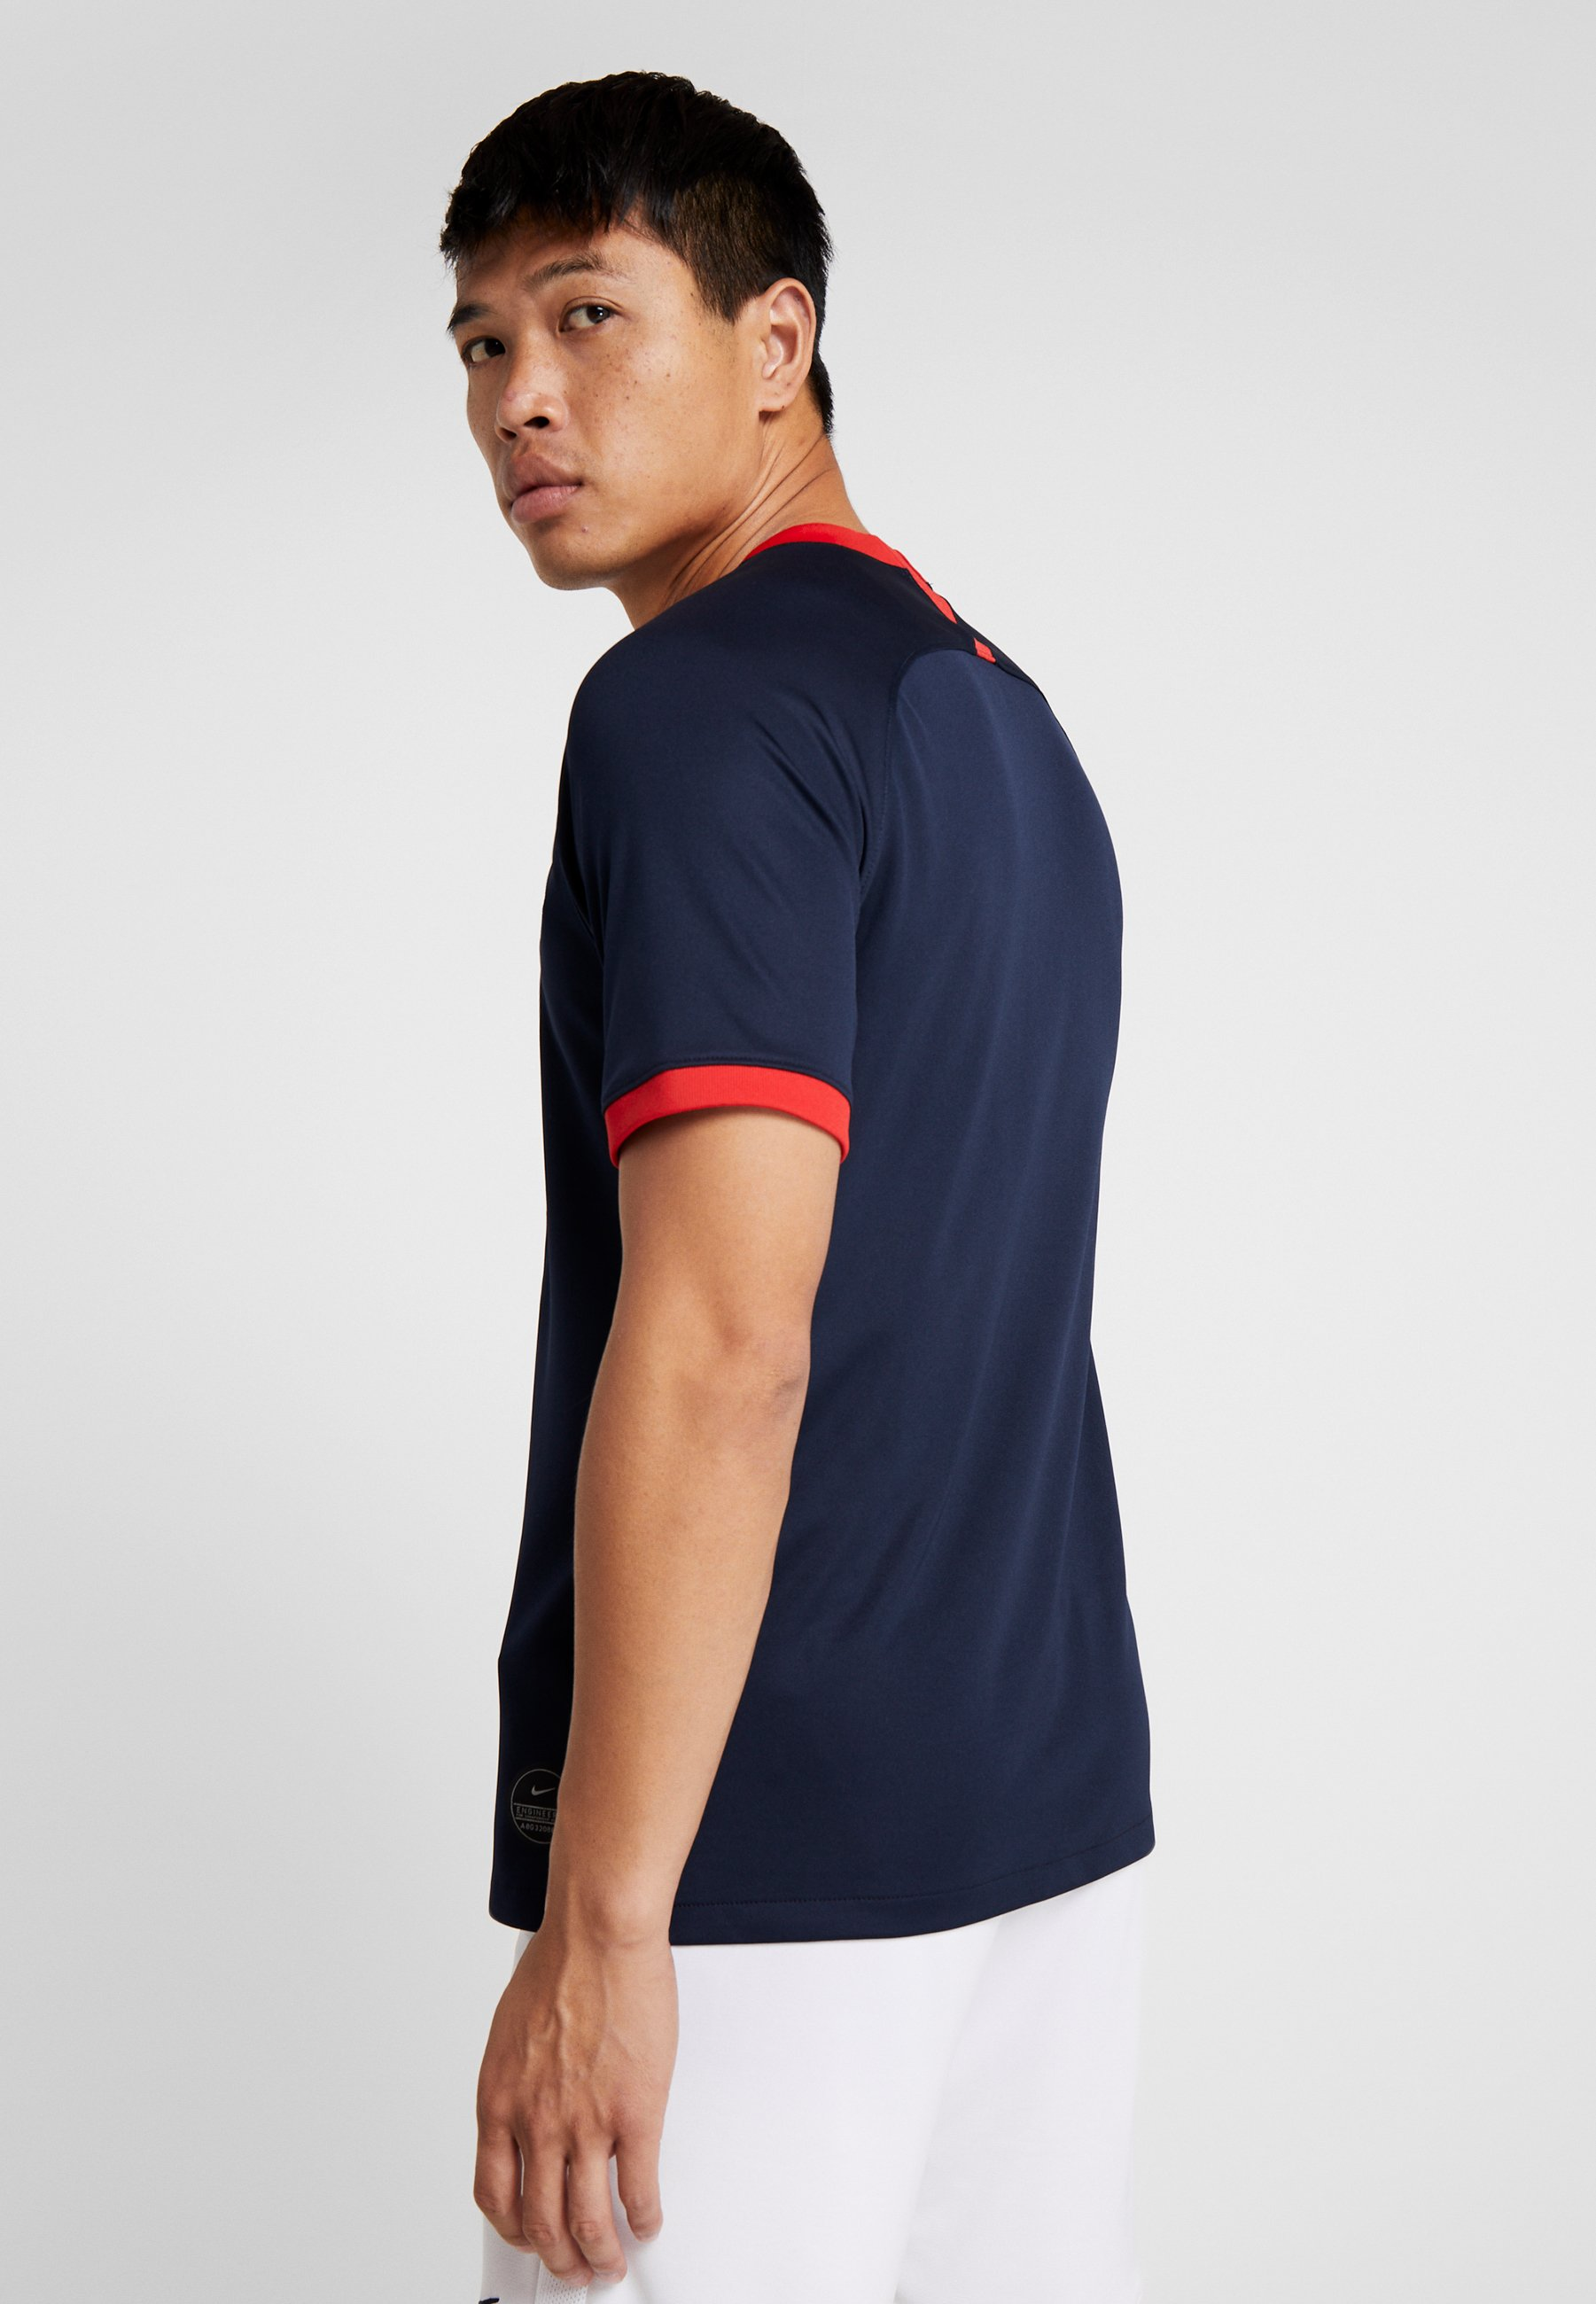 university Nike Obsidian LeipzigArticle Dark Supporter Rb Red Performance De CoWdxBer